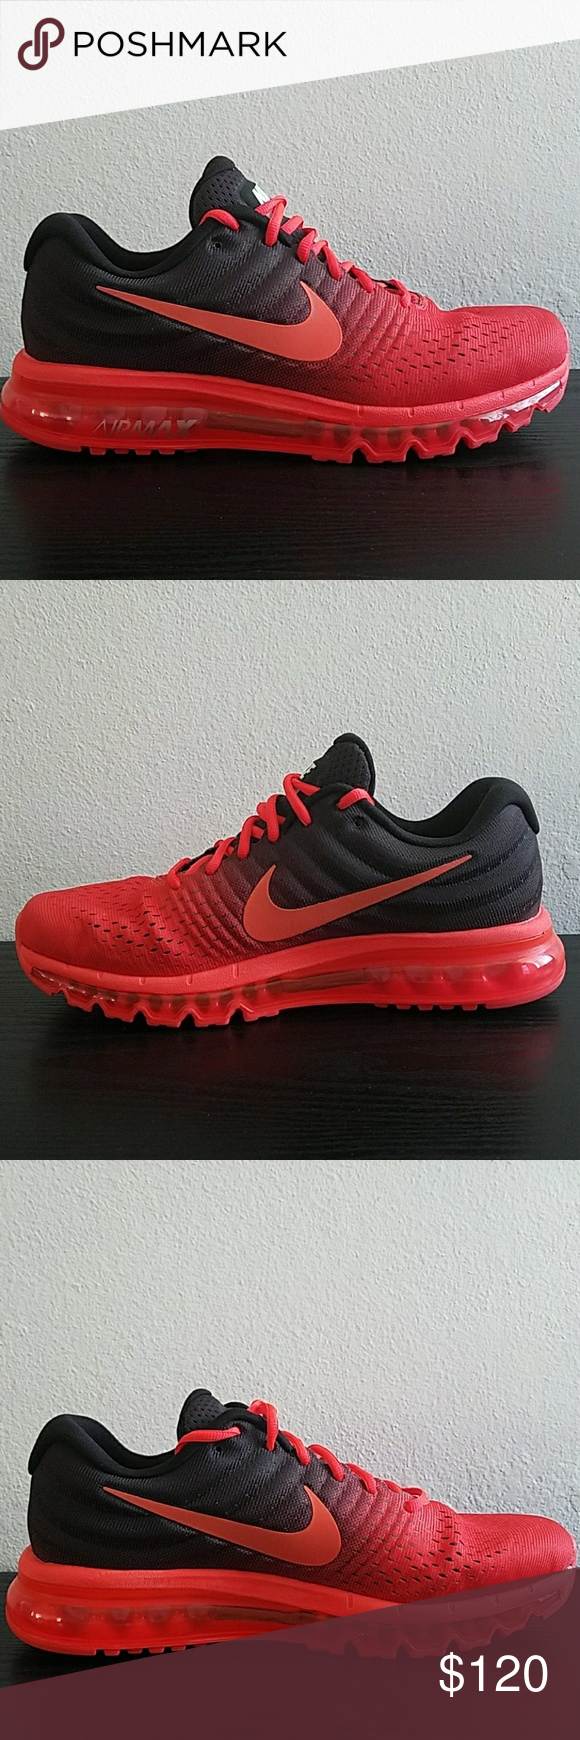 designer fashion 0502c addb4 Nike Air Max 2017 Crimson Nike 849559 600 New Nike Air Max 2017 Men s  Running Shoes Nike 849559 600 Color  Bright Crimson  Total Crimson Size  11.5 New ...